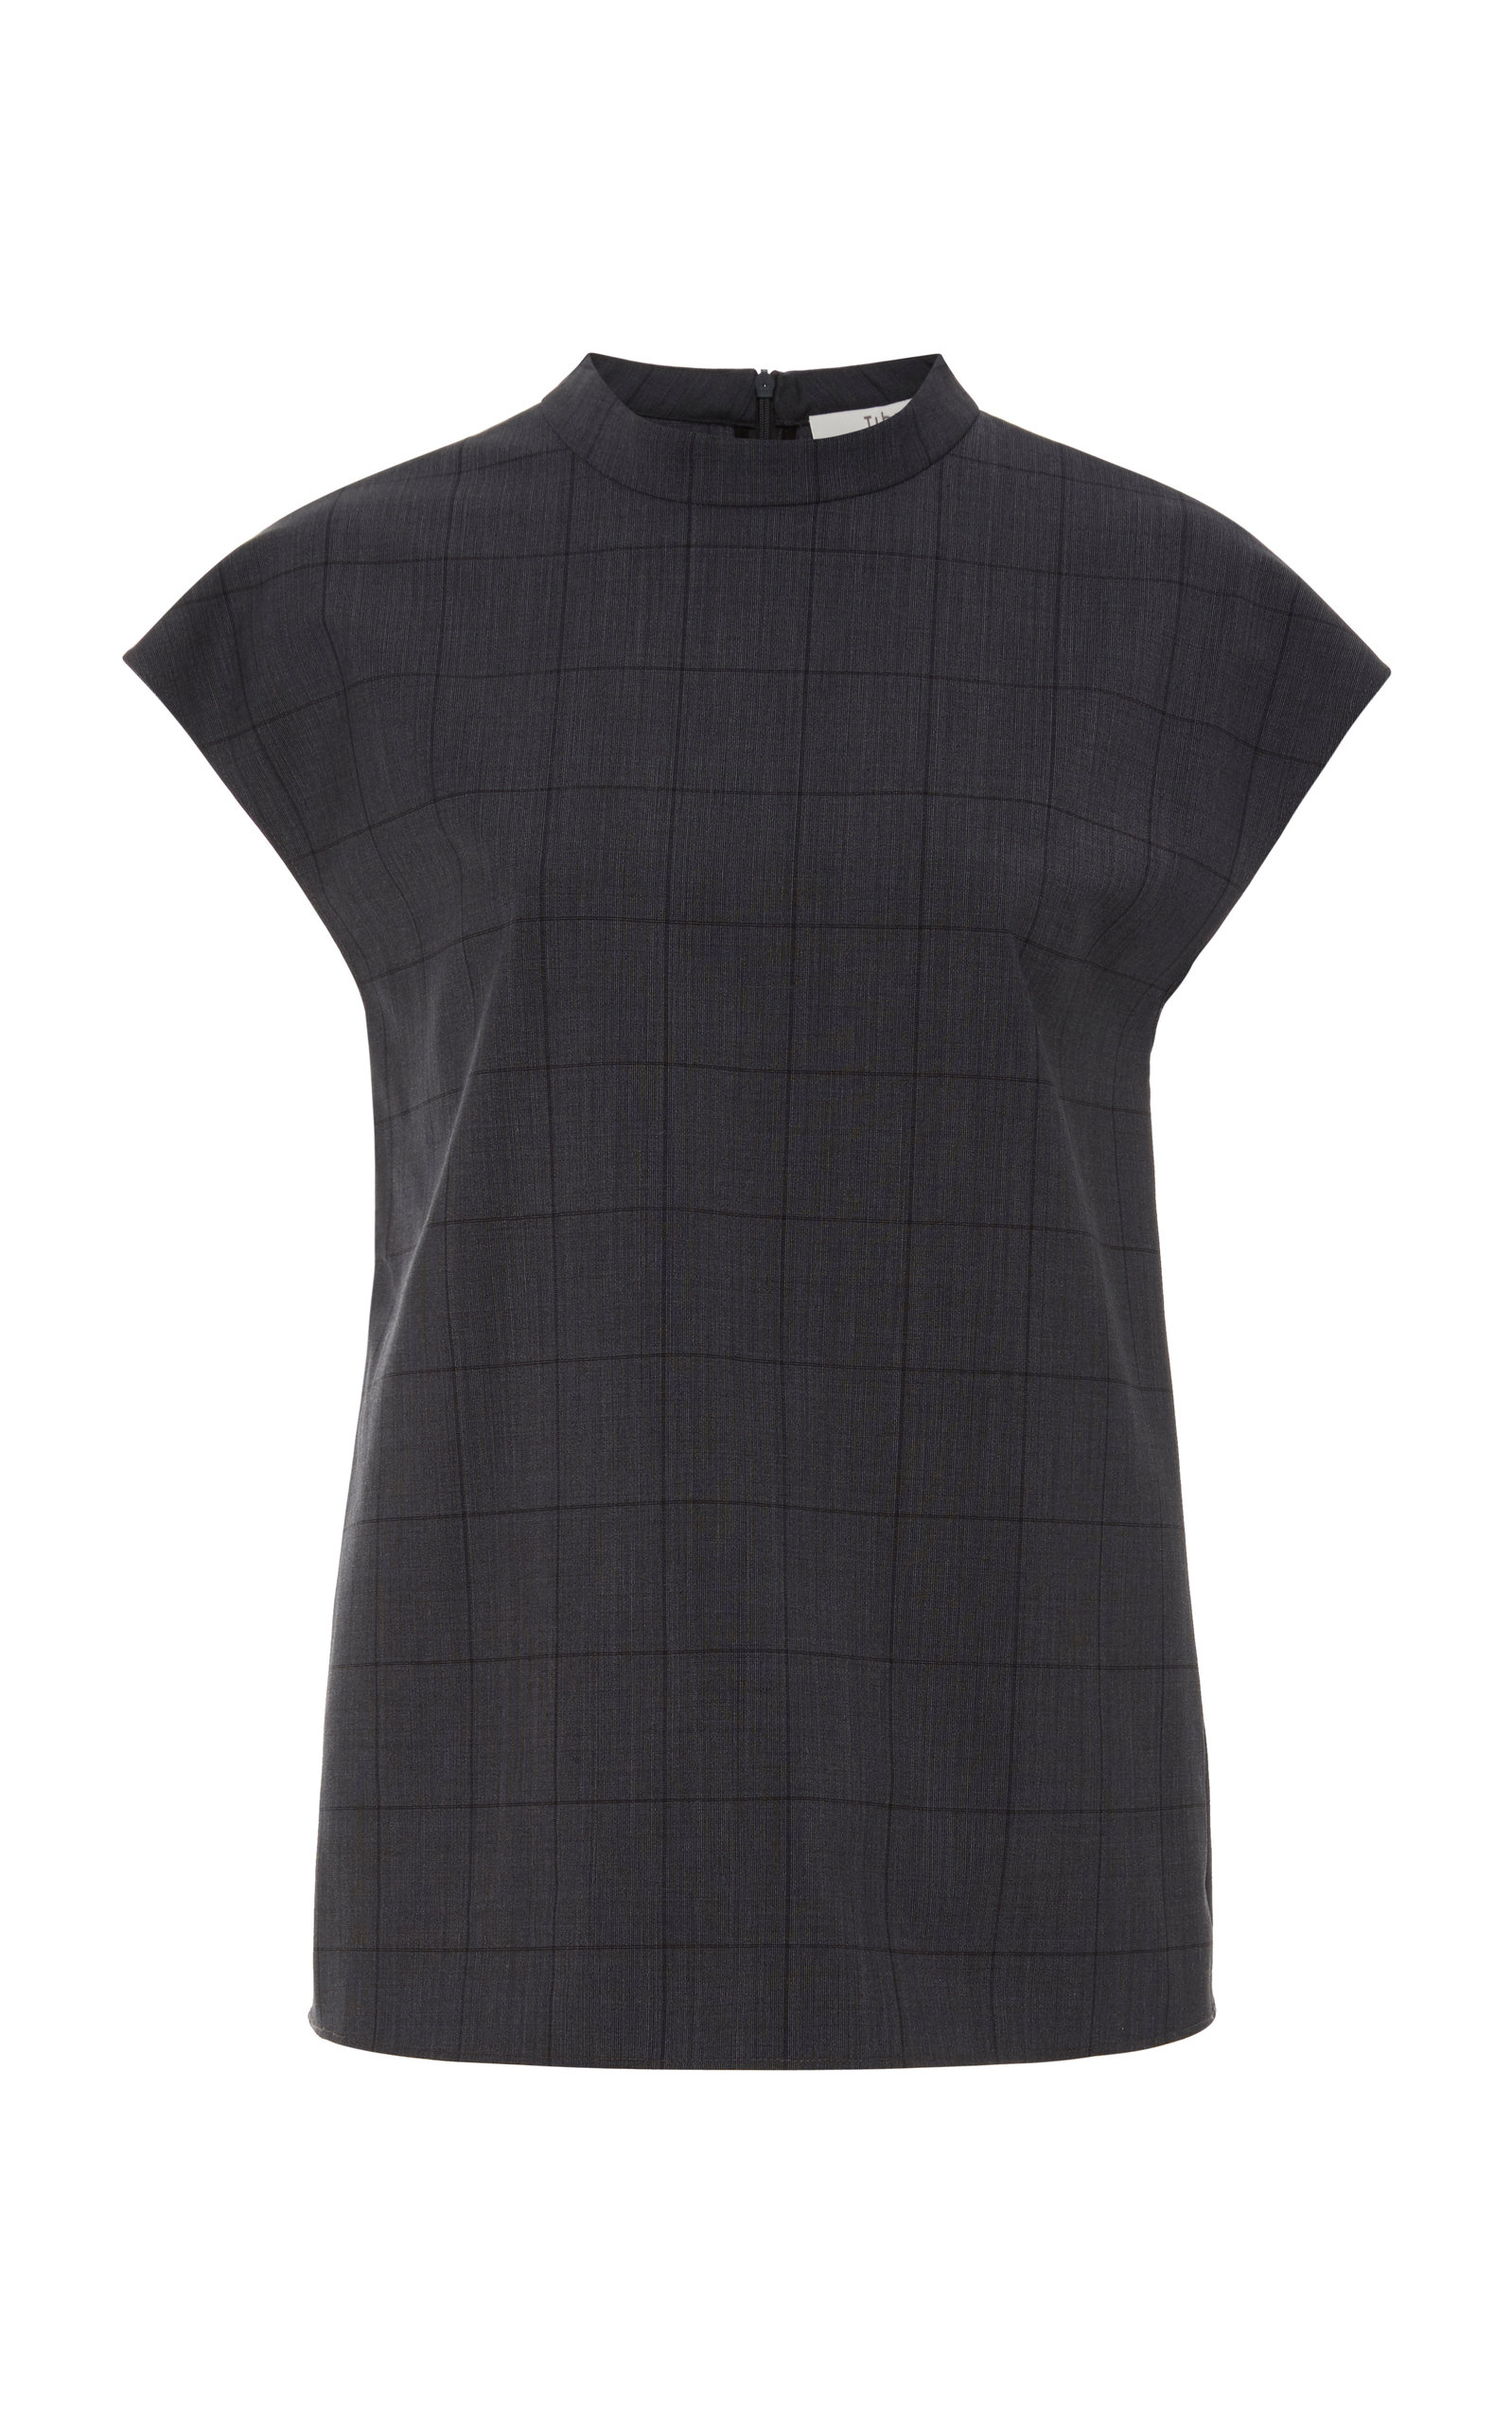 Tibi Tops CHECKED WOVEN TOP SIZE: L